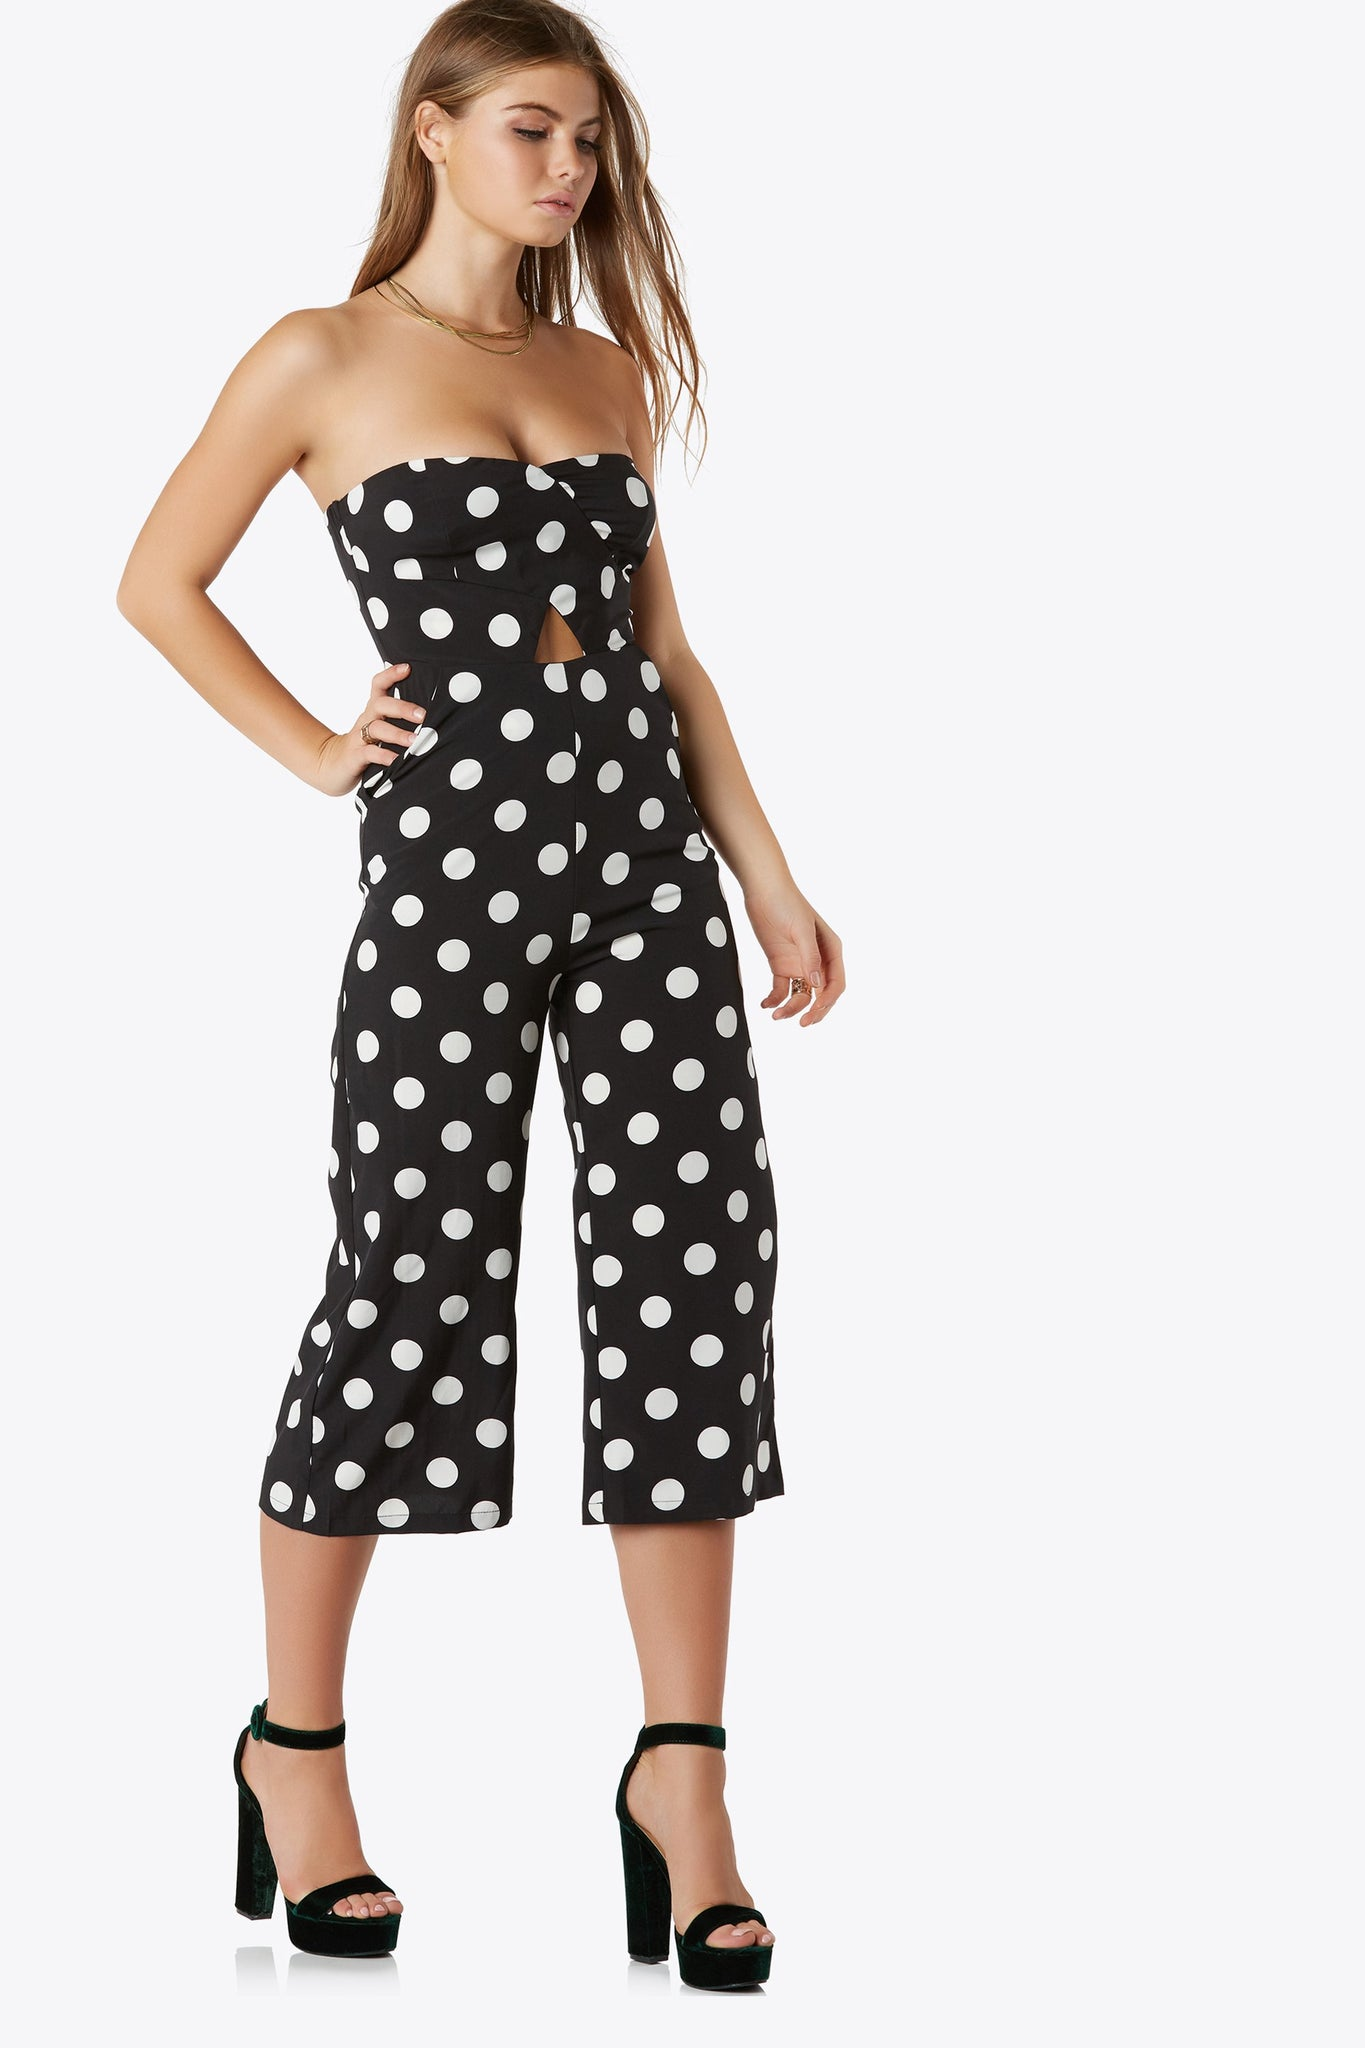 Flowy strapless jumpsuit in polka dot print. Features front hidden pockets, triangular cut out and back hidden zipper and hook closure. Sleek inside rubber lining around neckline for additive support.